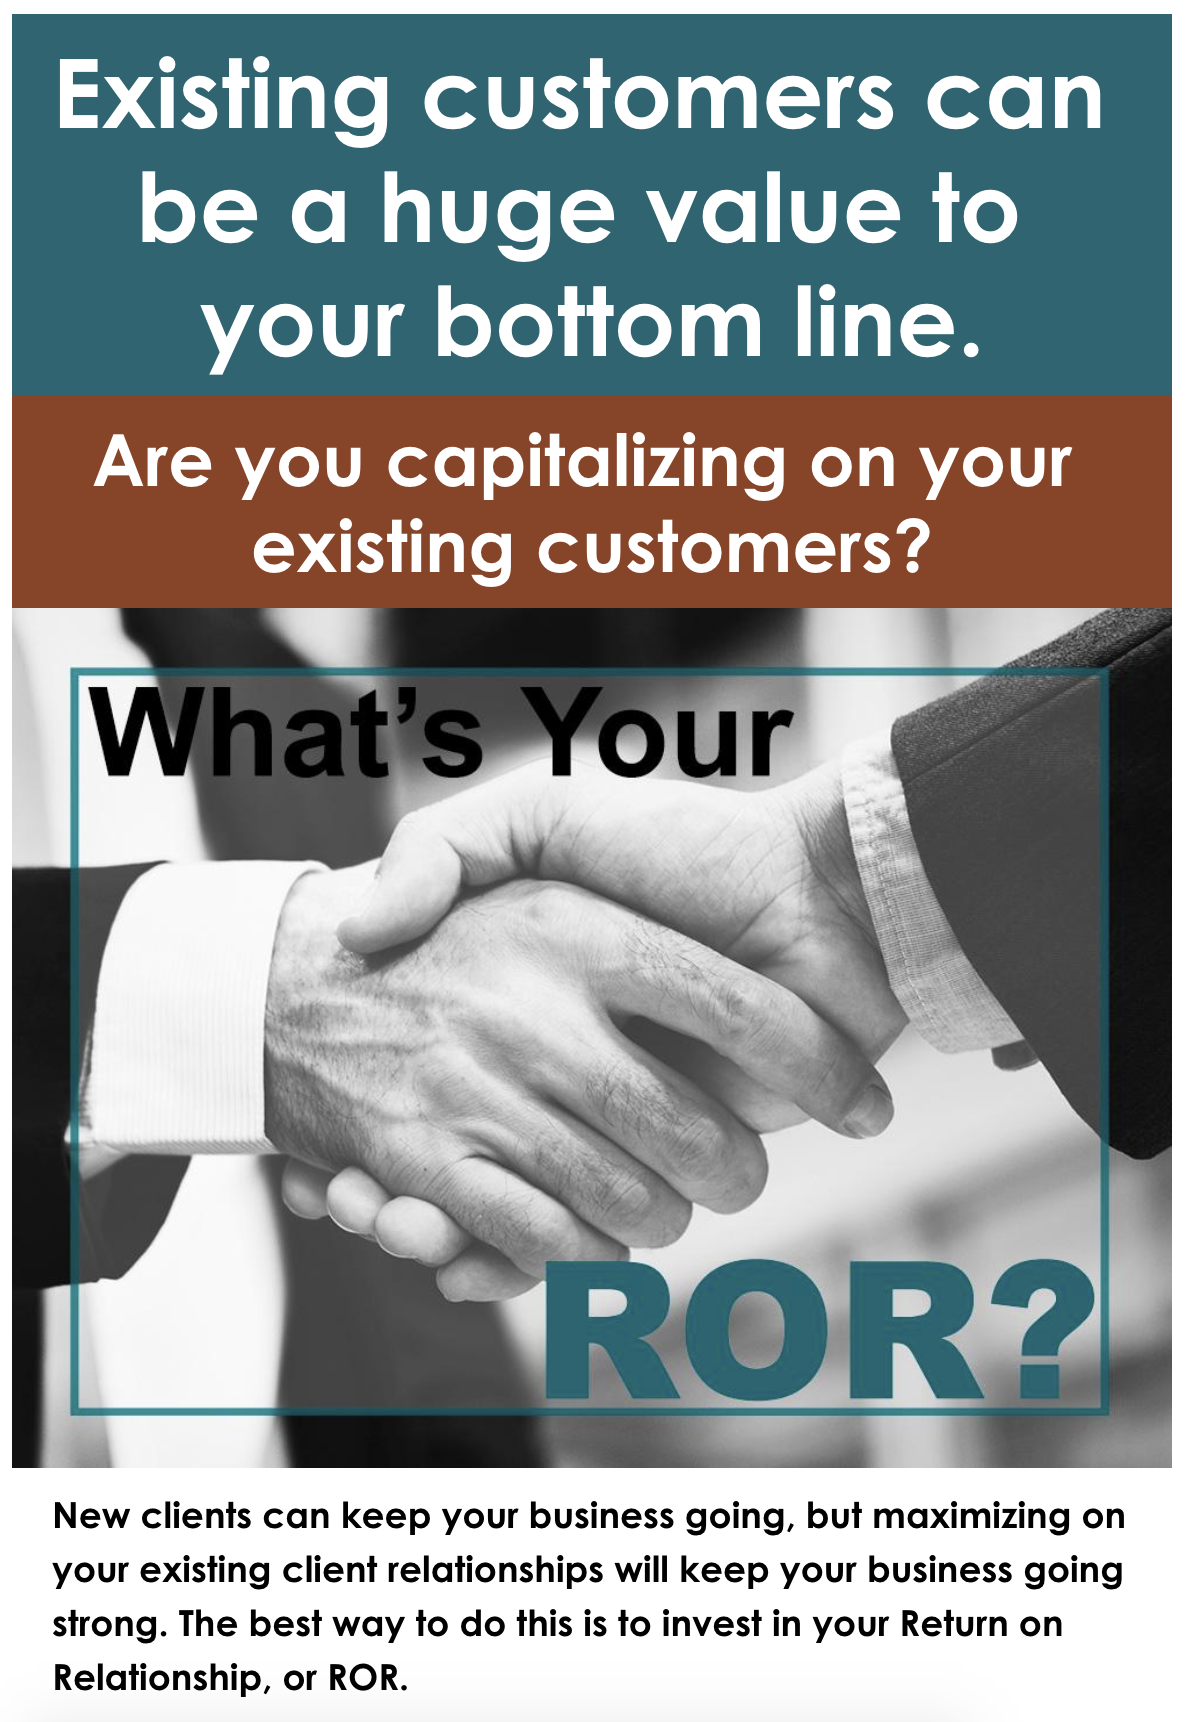 Maximizing your existing customer ROI